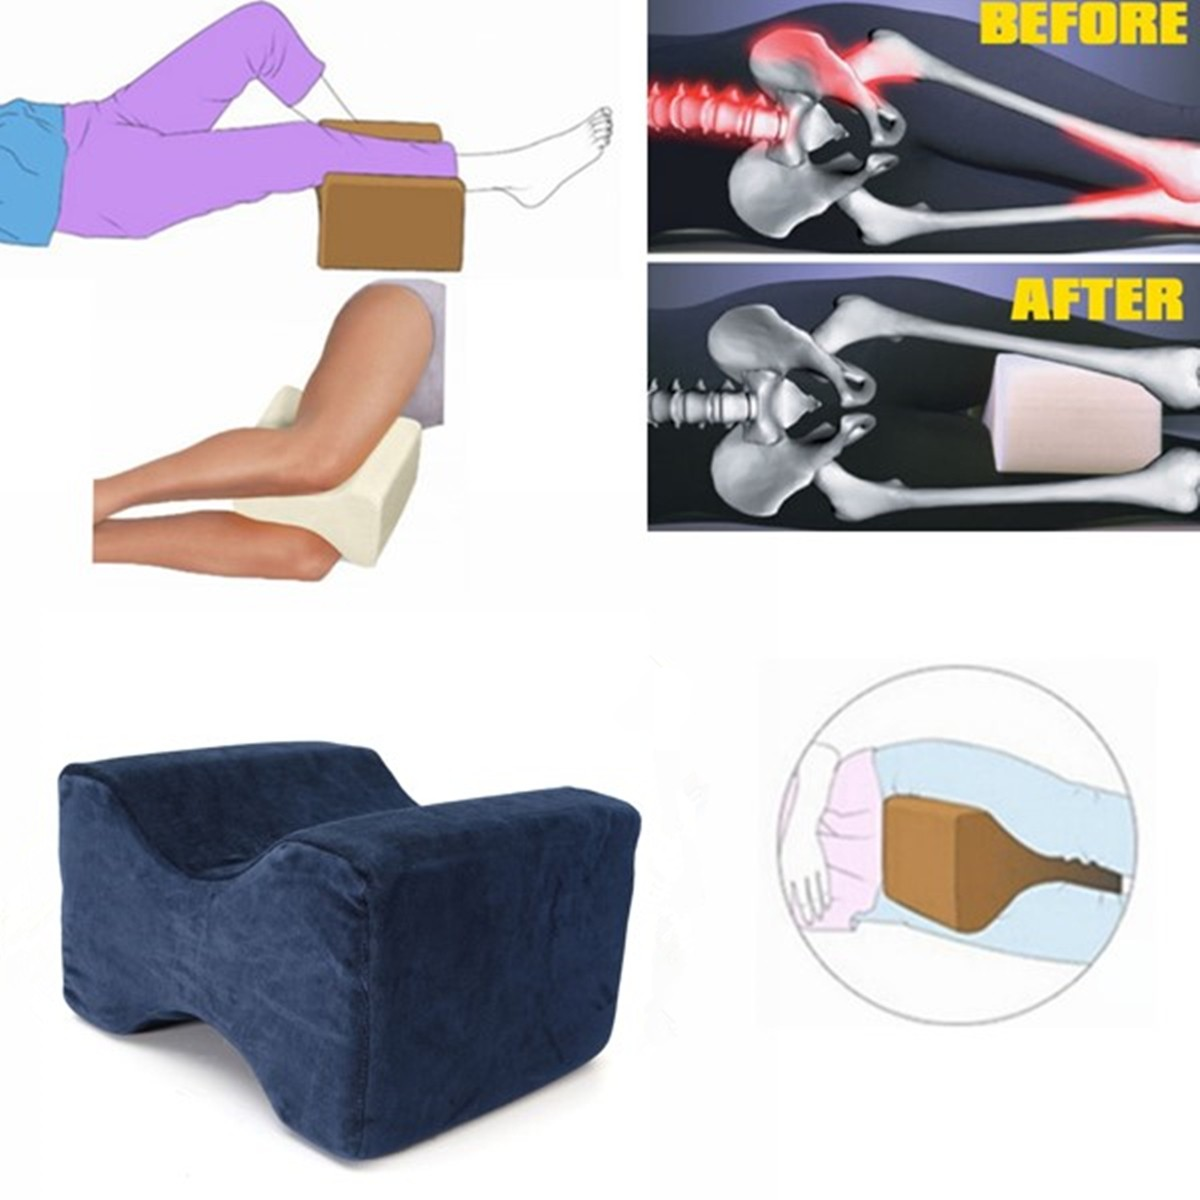 saiclehome memory foam orthopedic knee wedge pillow spinal senses legs support coccyx pressure relief bed cushion